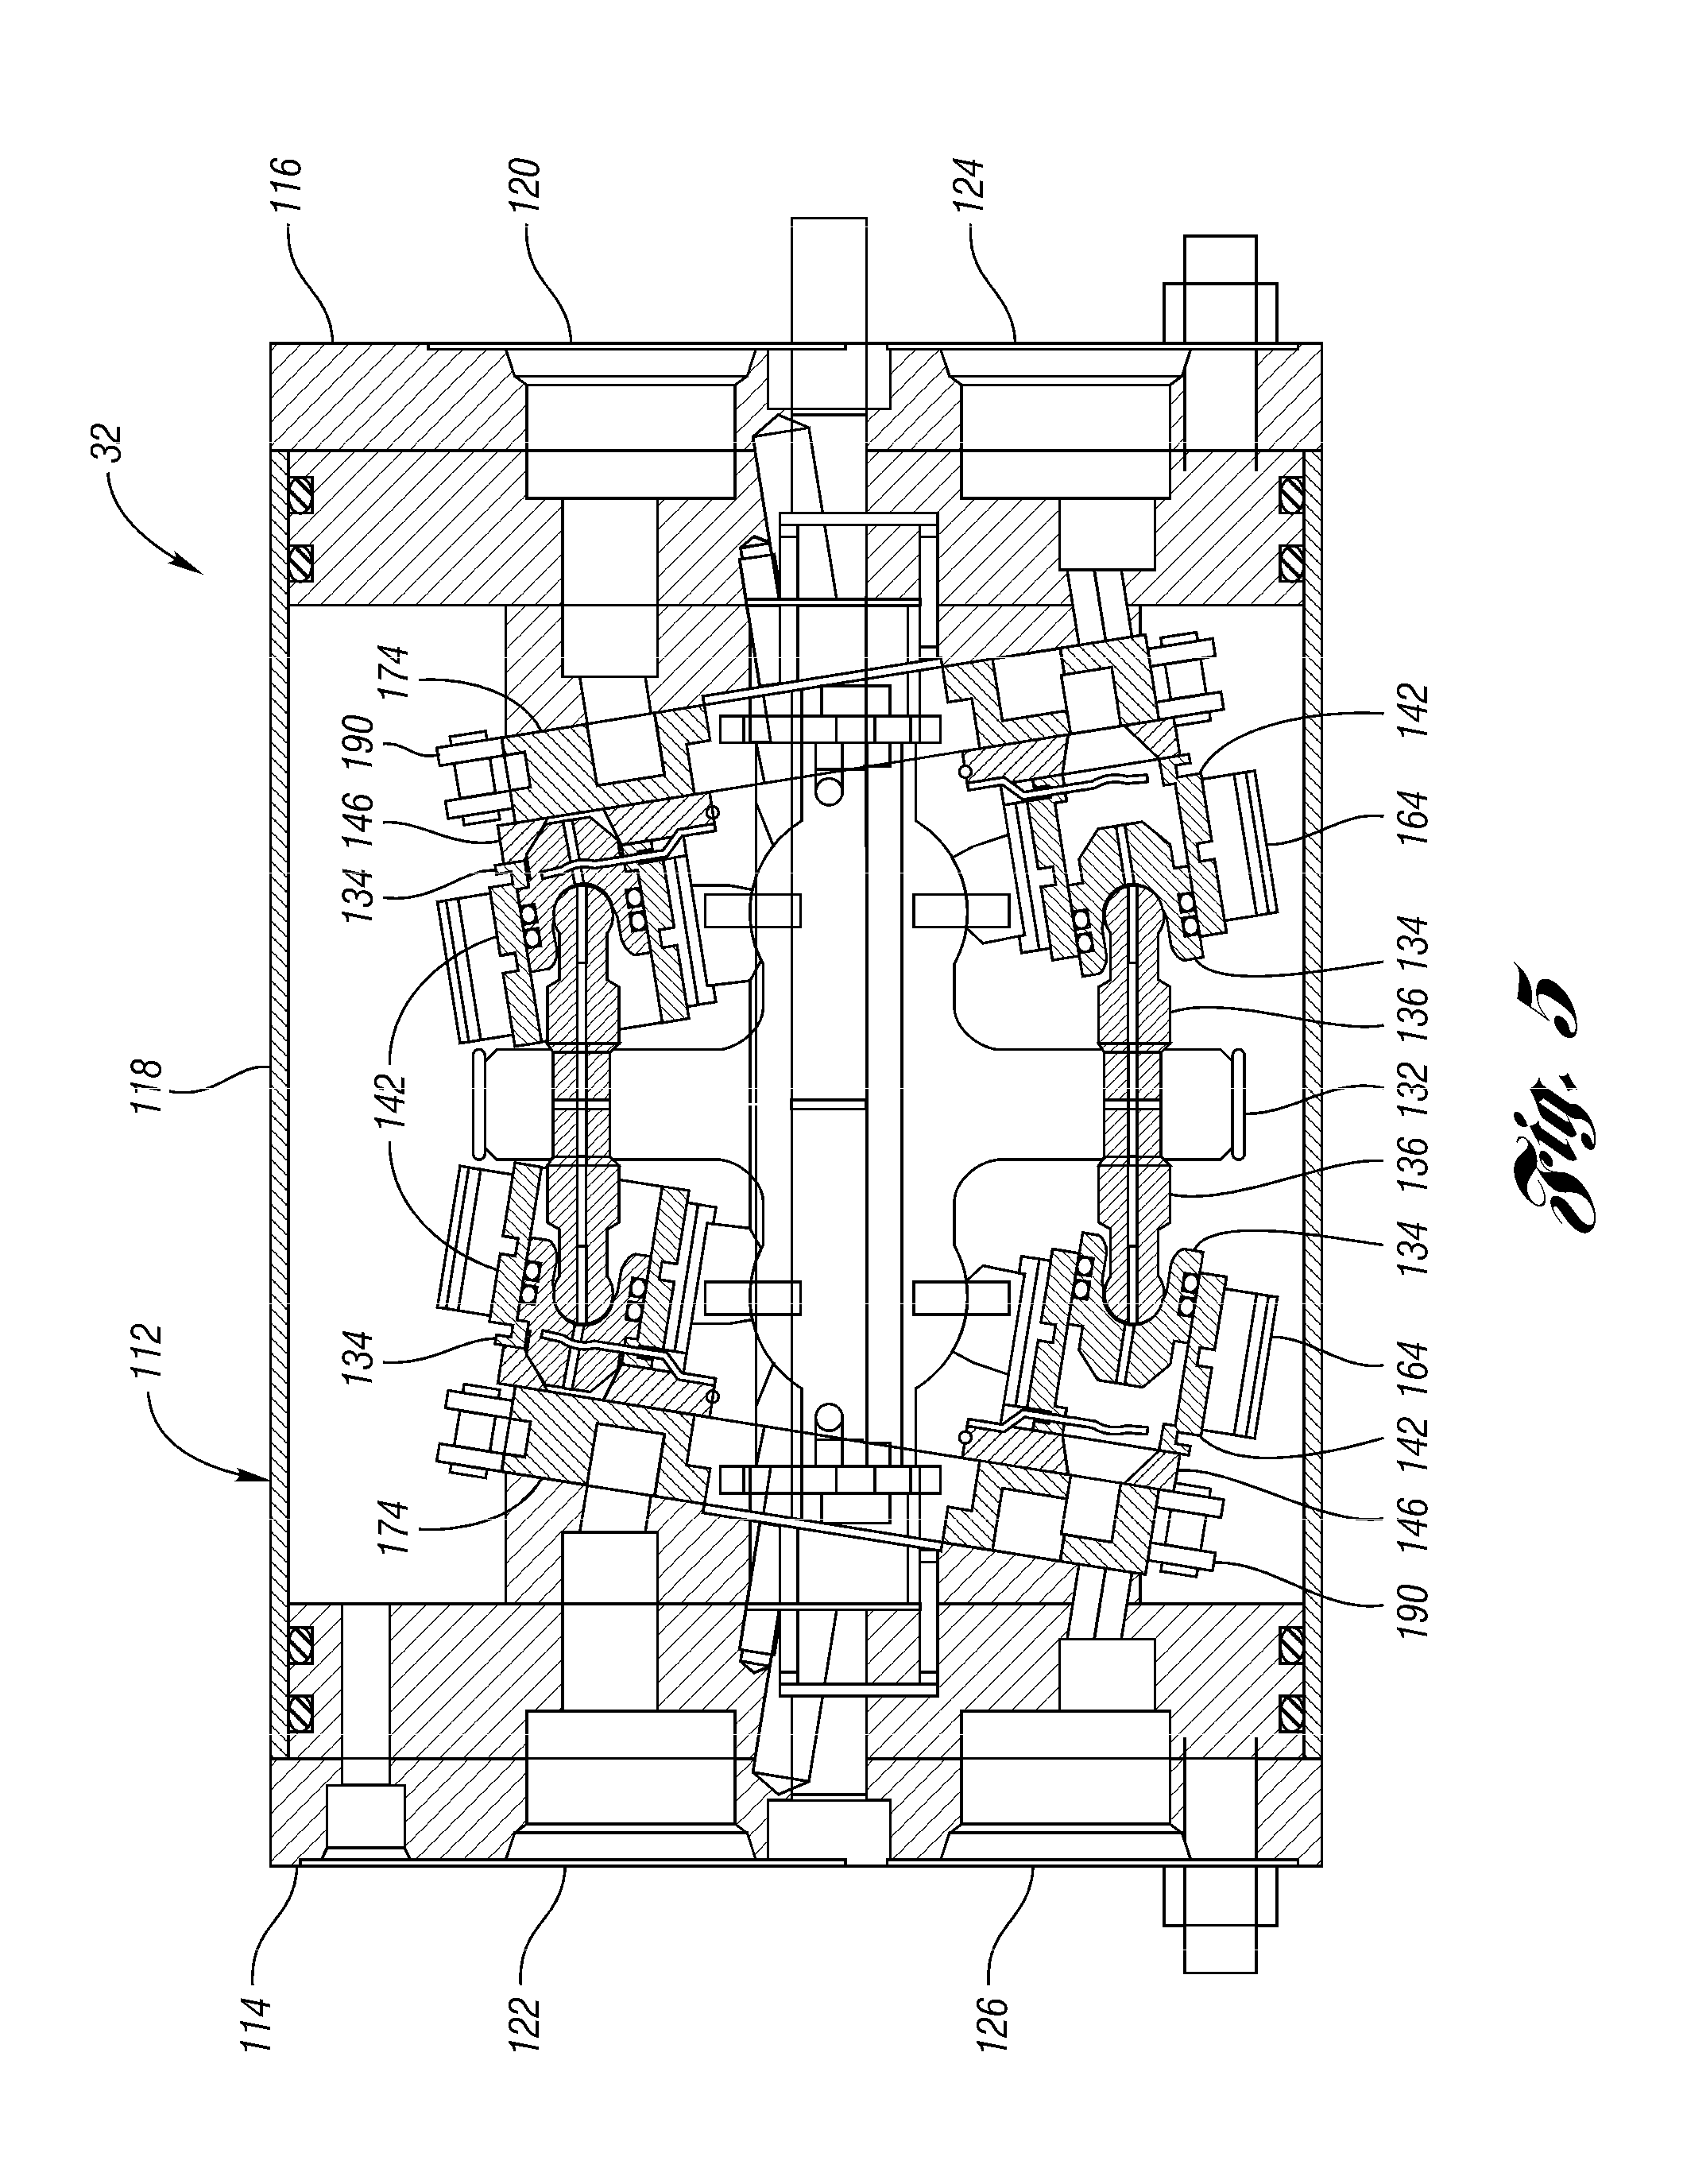 patent us7562944 - hydraulic regenerative braking system for a vehicle